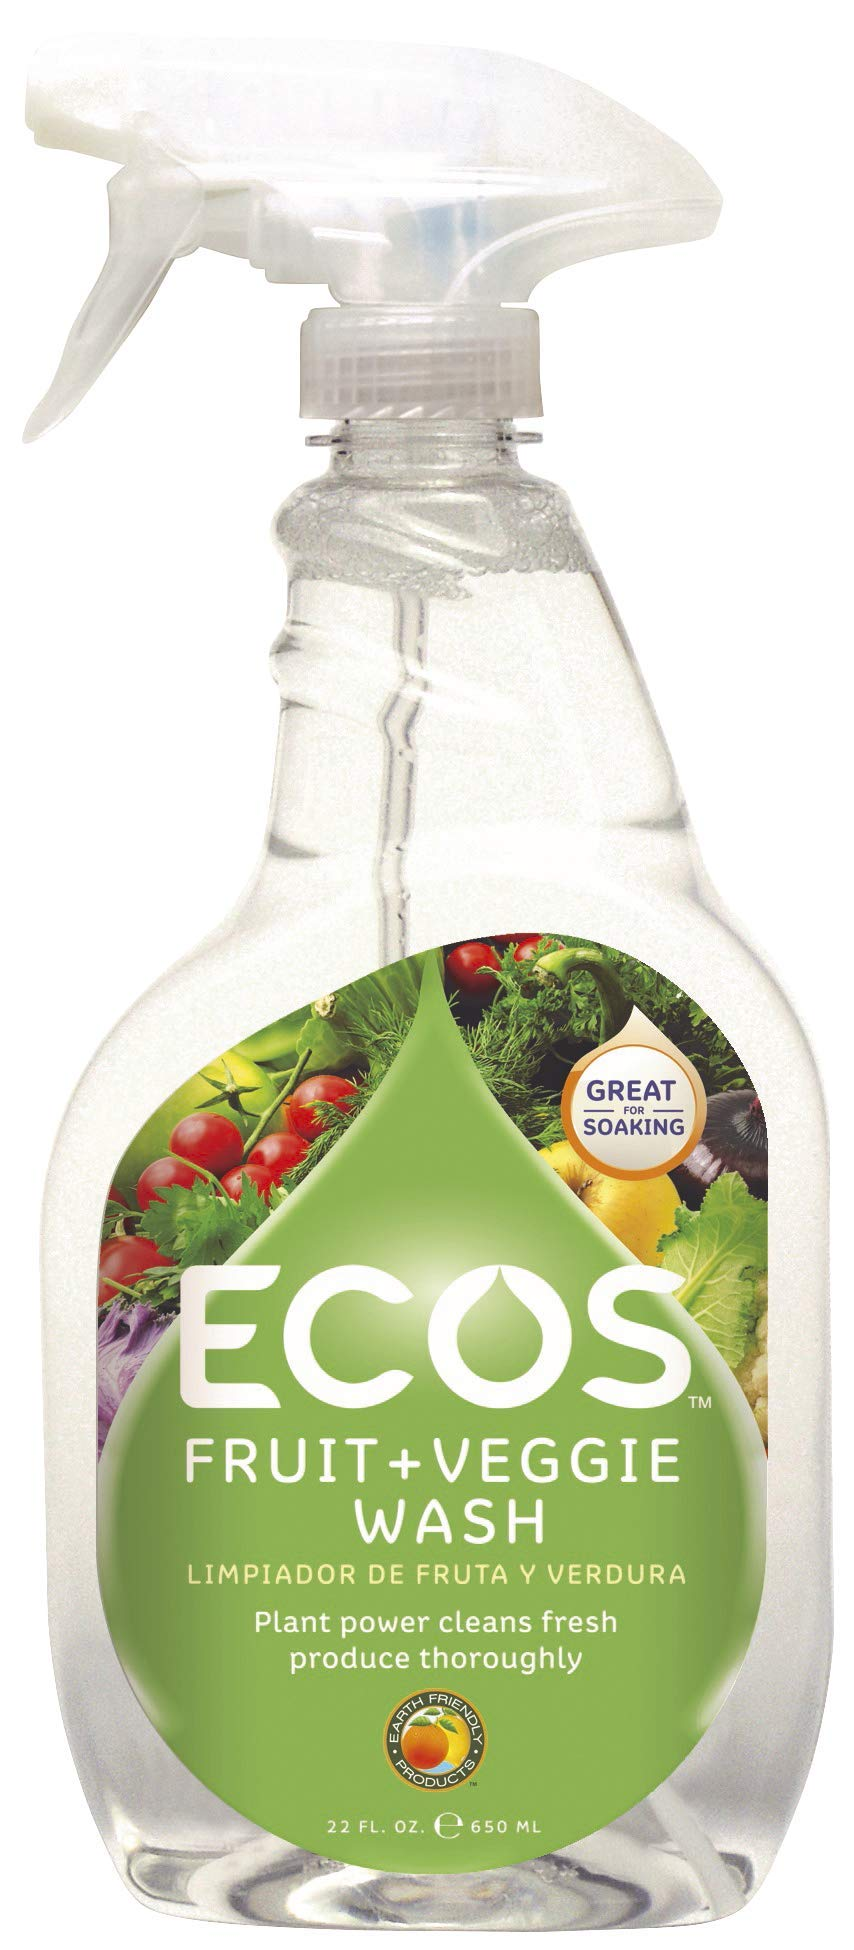 ECOS Fruit and Veggie Wash, 1 Count